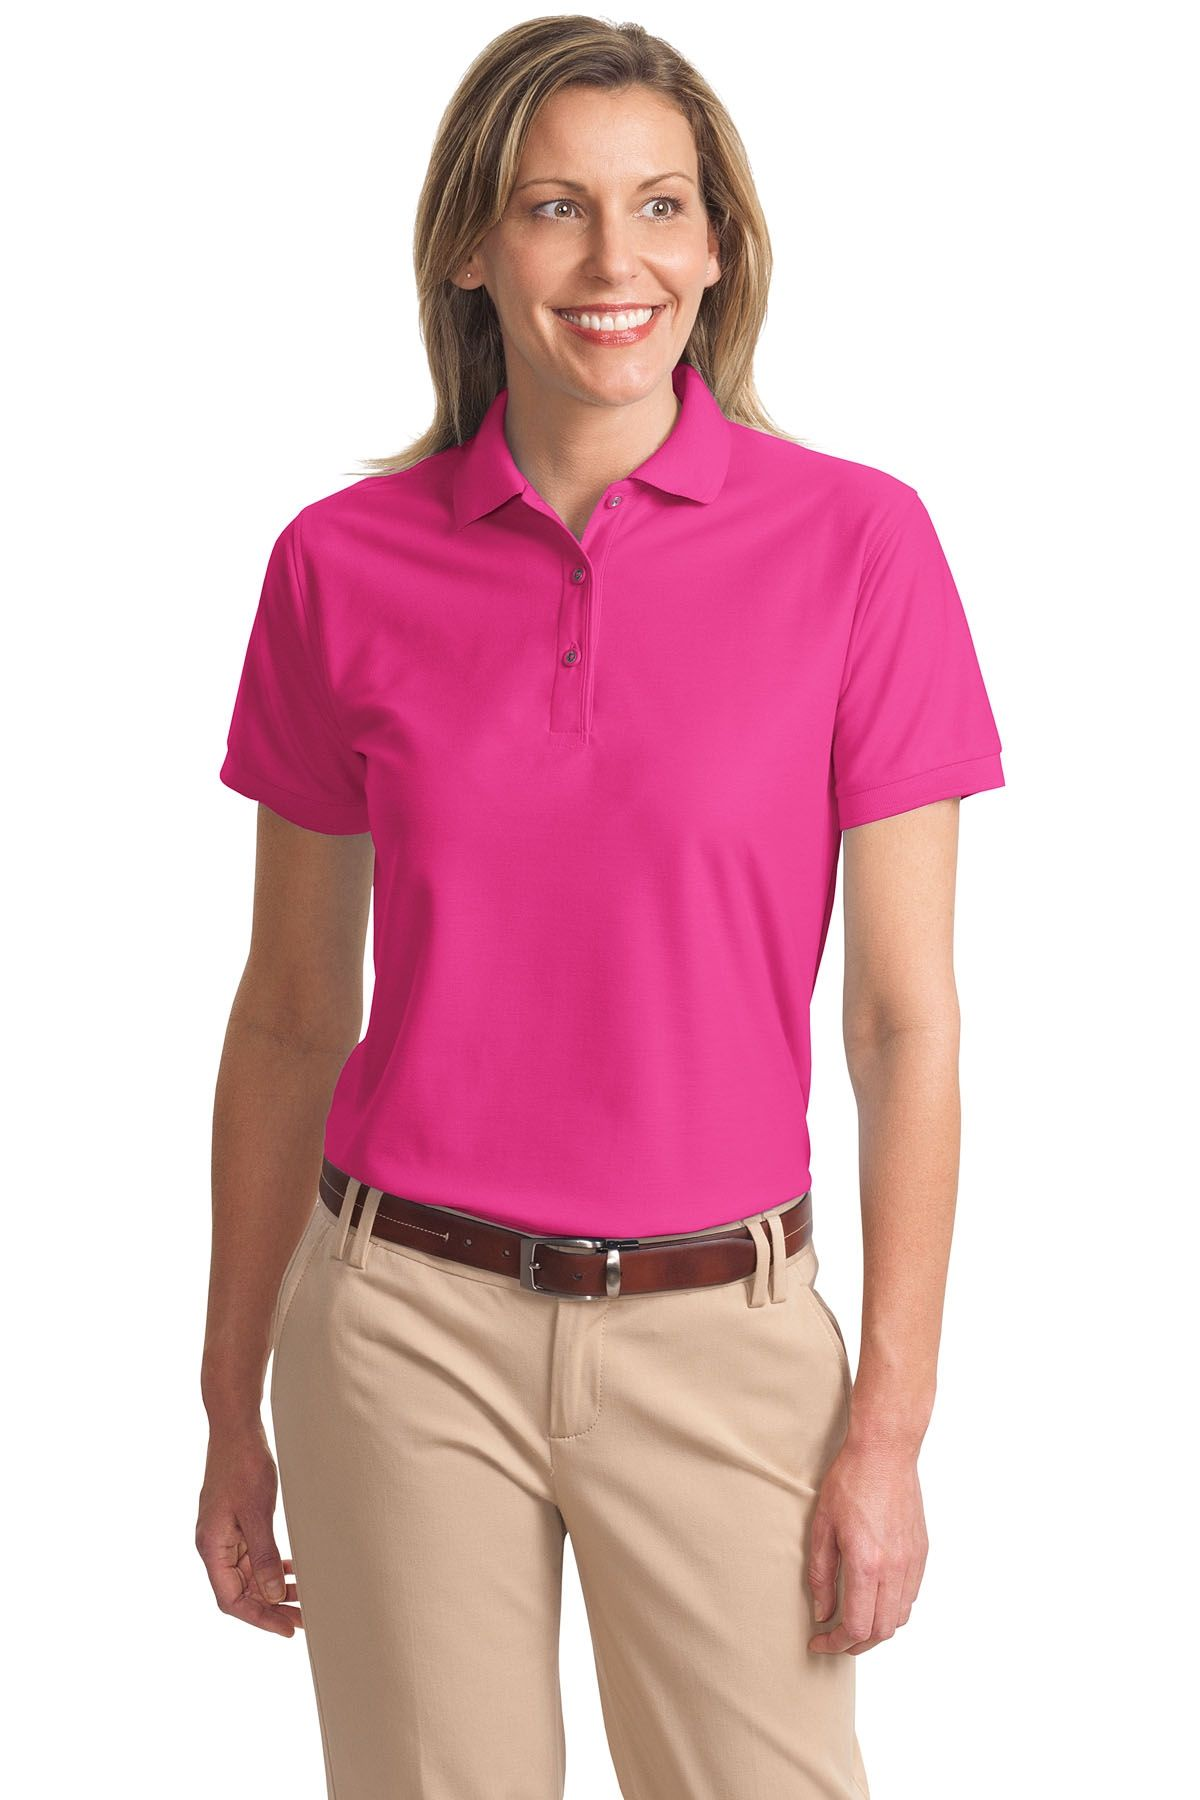 90ad73ce Port Authority Ladies Silk Touch Polo Shirt: A comfortable classic polo,  wrinkle and shrink resistance, silky soft, incredible range of styles, ...